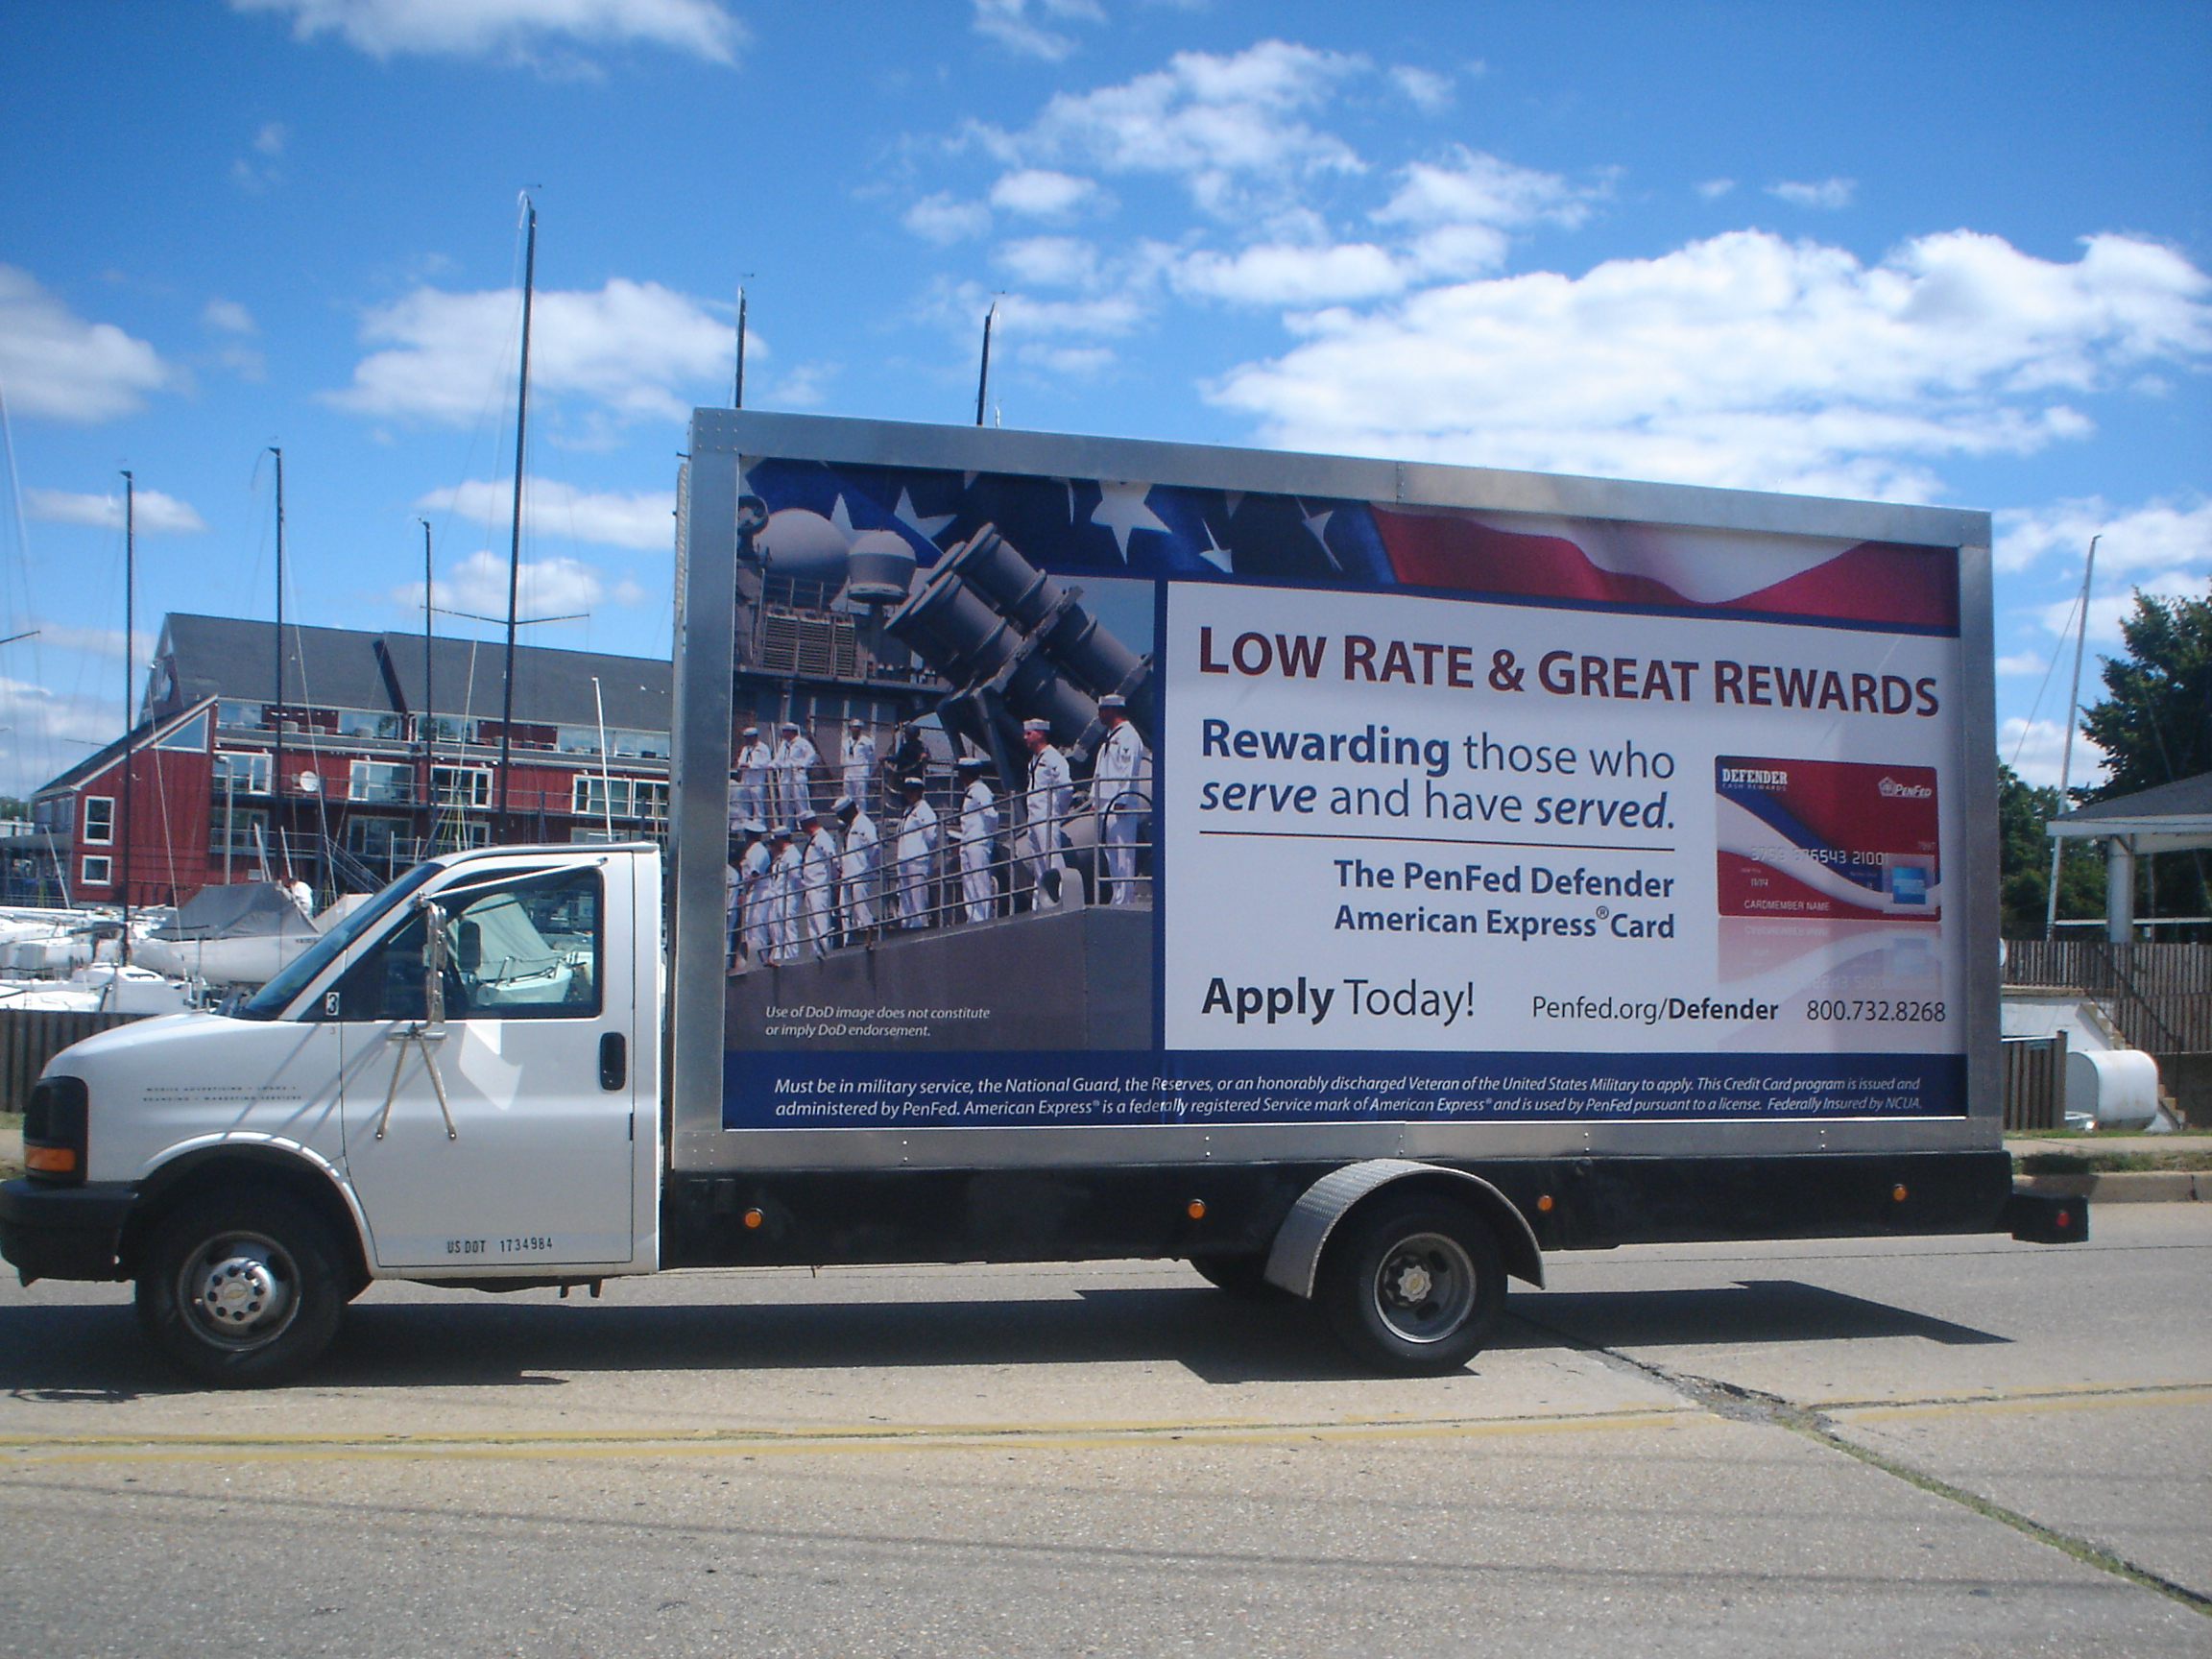 Mobile Billboard Advertising in Norfolk / Virginia Beach, VA